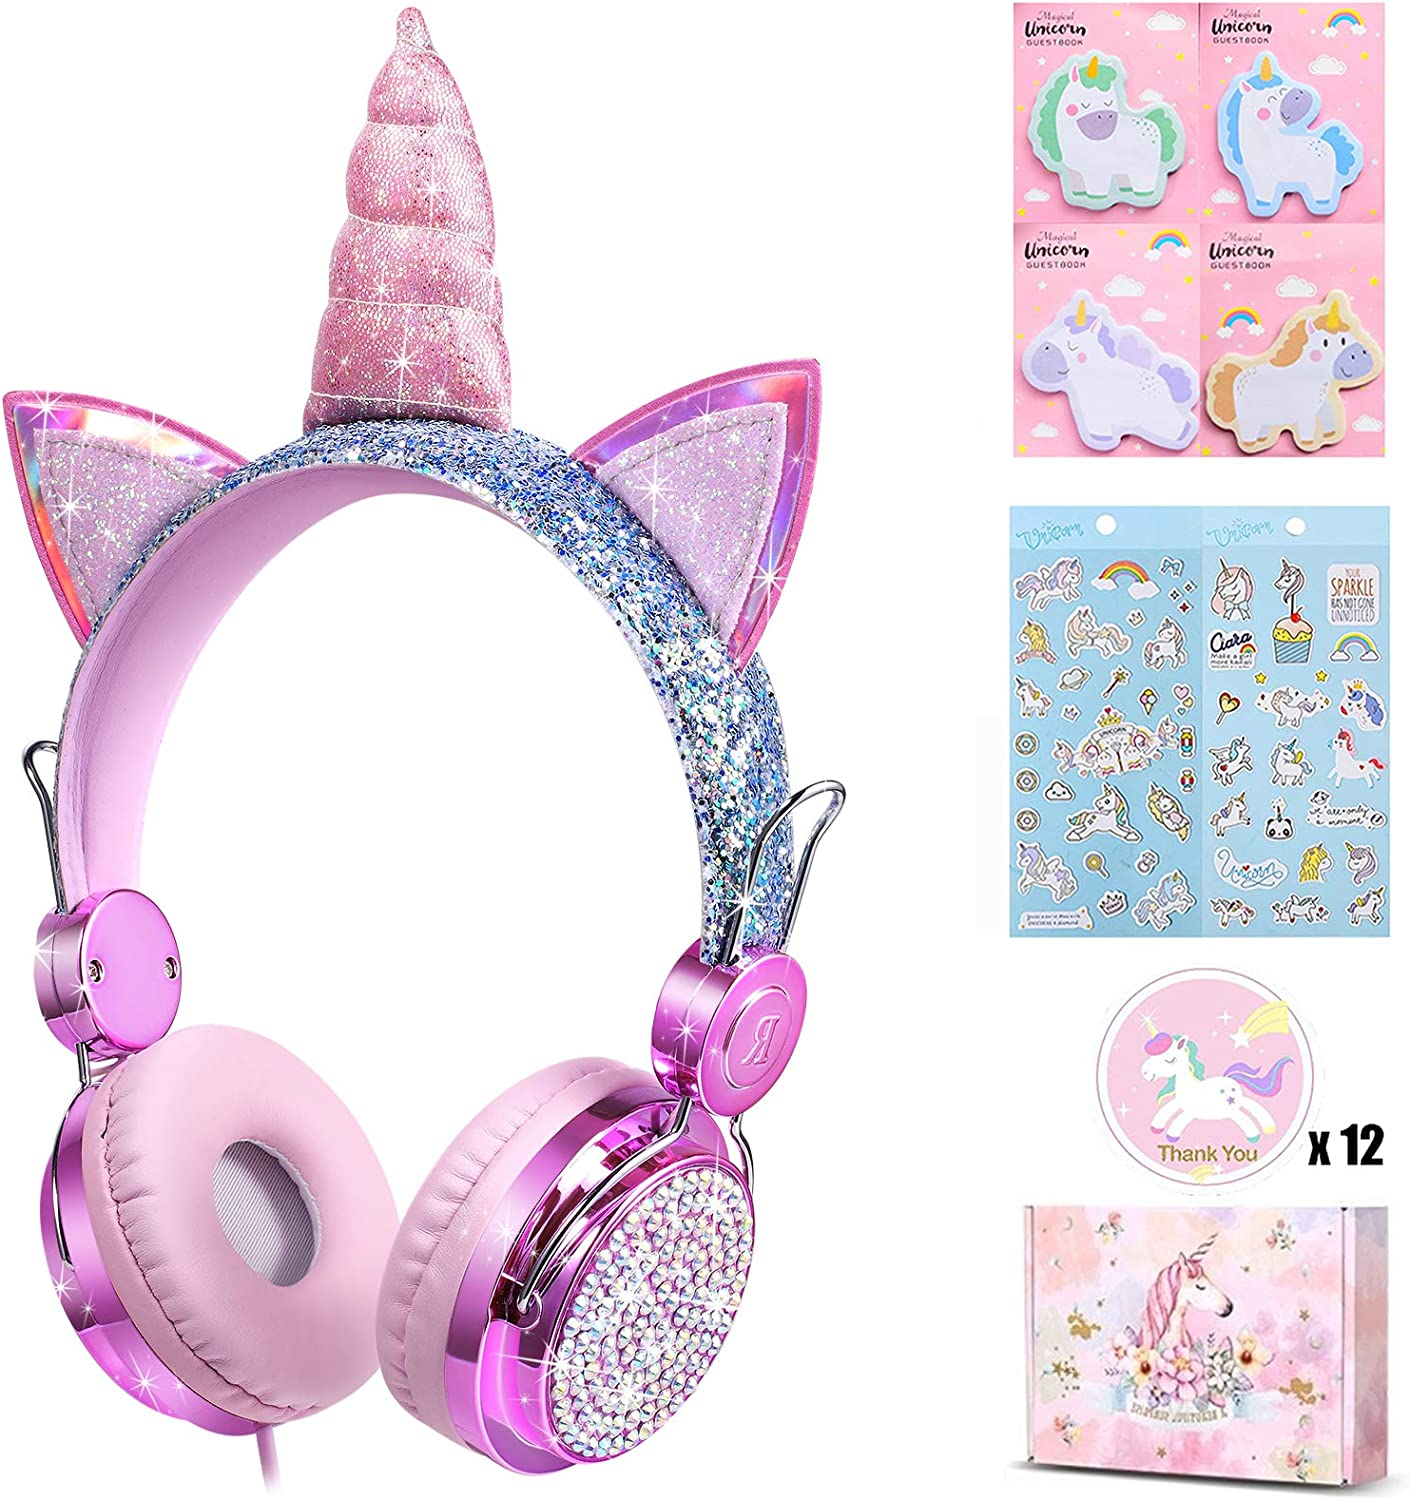 charlxee Kids Headphones with Microphone for School,Giant Unicorn Gifts for Girls Children Birthday,On Over Ear Wired Headset with 3.5mm Jack/HD Sound/Kindle/Online Study(Princess,Colorful-Purple)